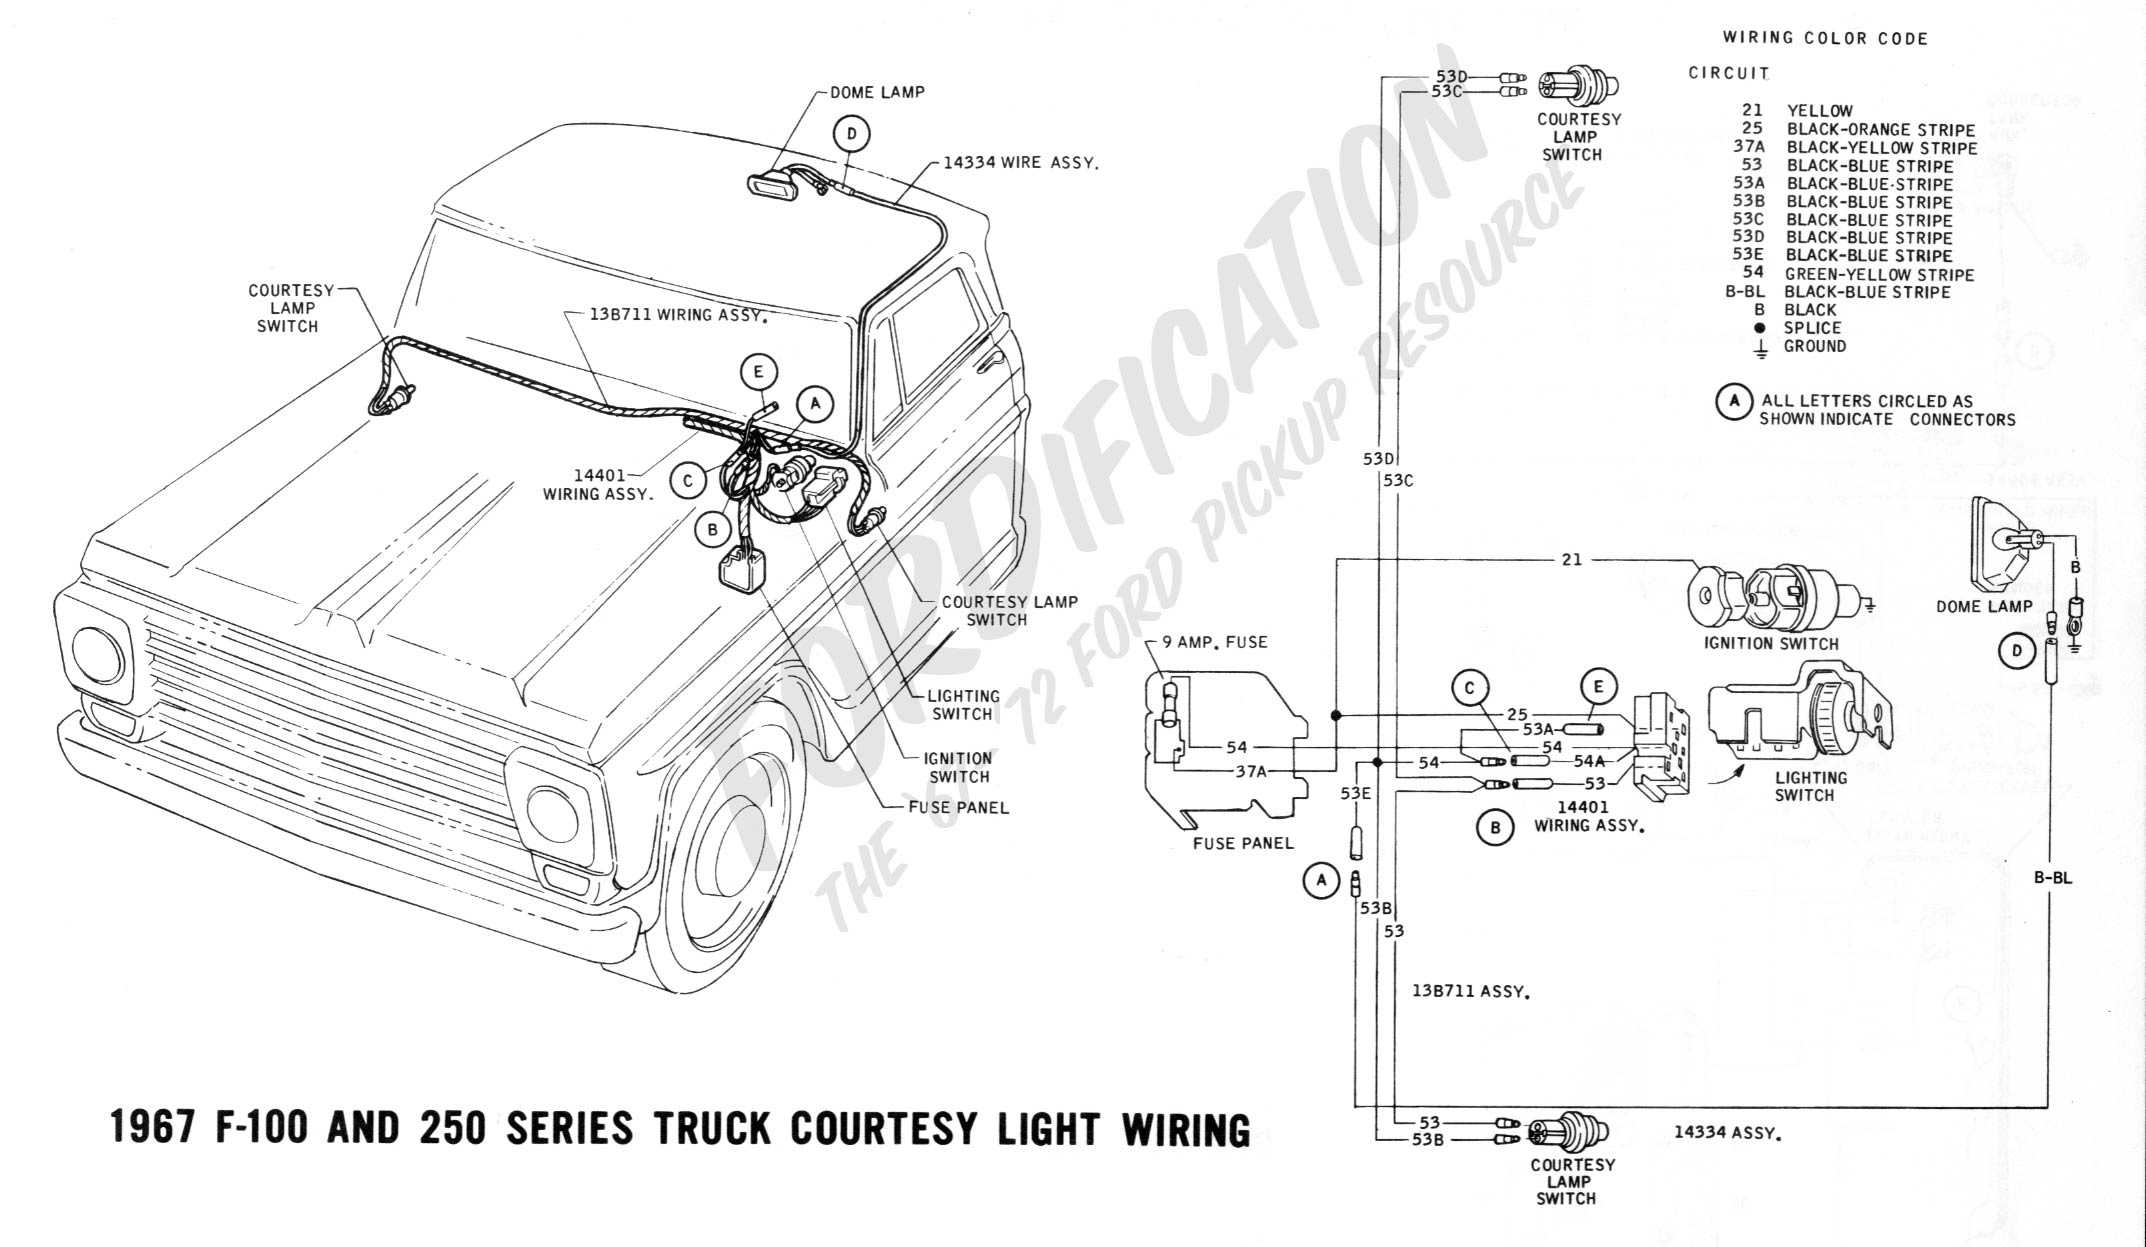 1973 ford f100 wiring diagram 1973 image wiring 1971 ford f100 wiring diagram 1971 auto wiring diagram schematic on 1973 ford f100 wiring diagram